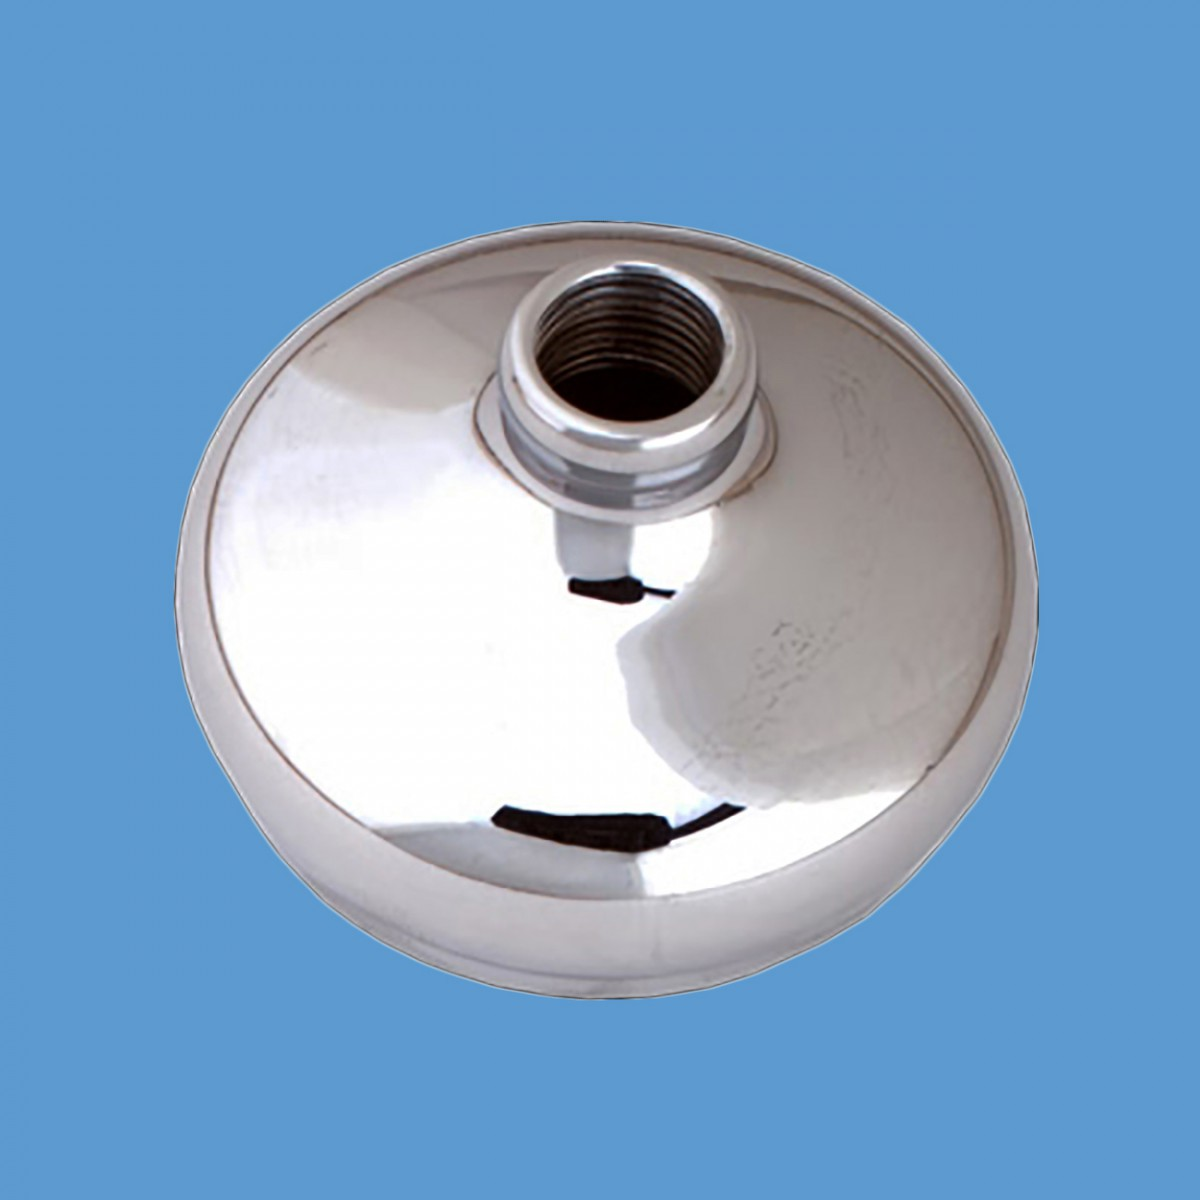 Bell For Widespread Tub Shower Faucet Replacement Chrome